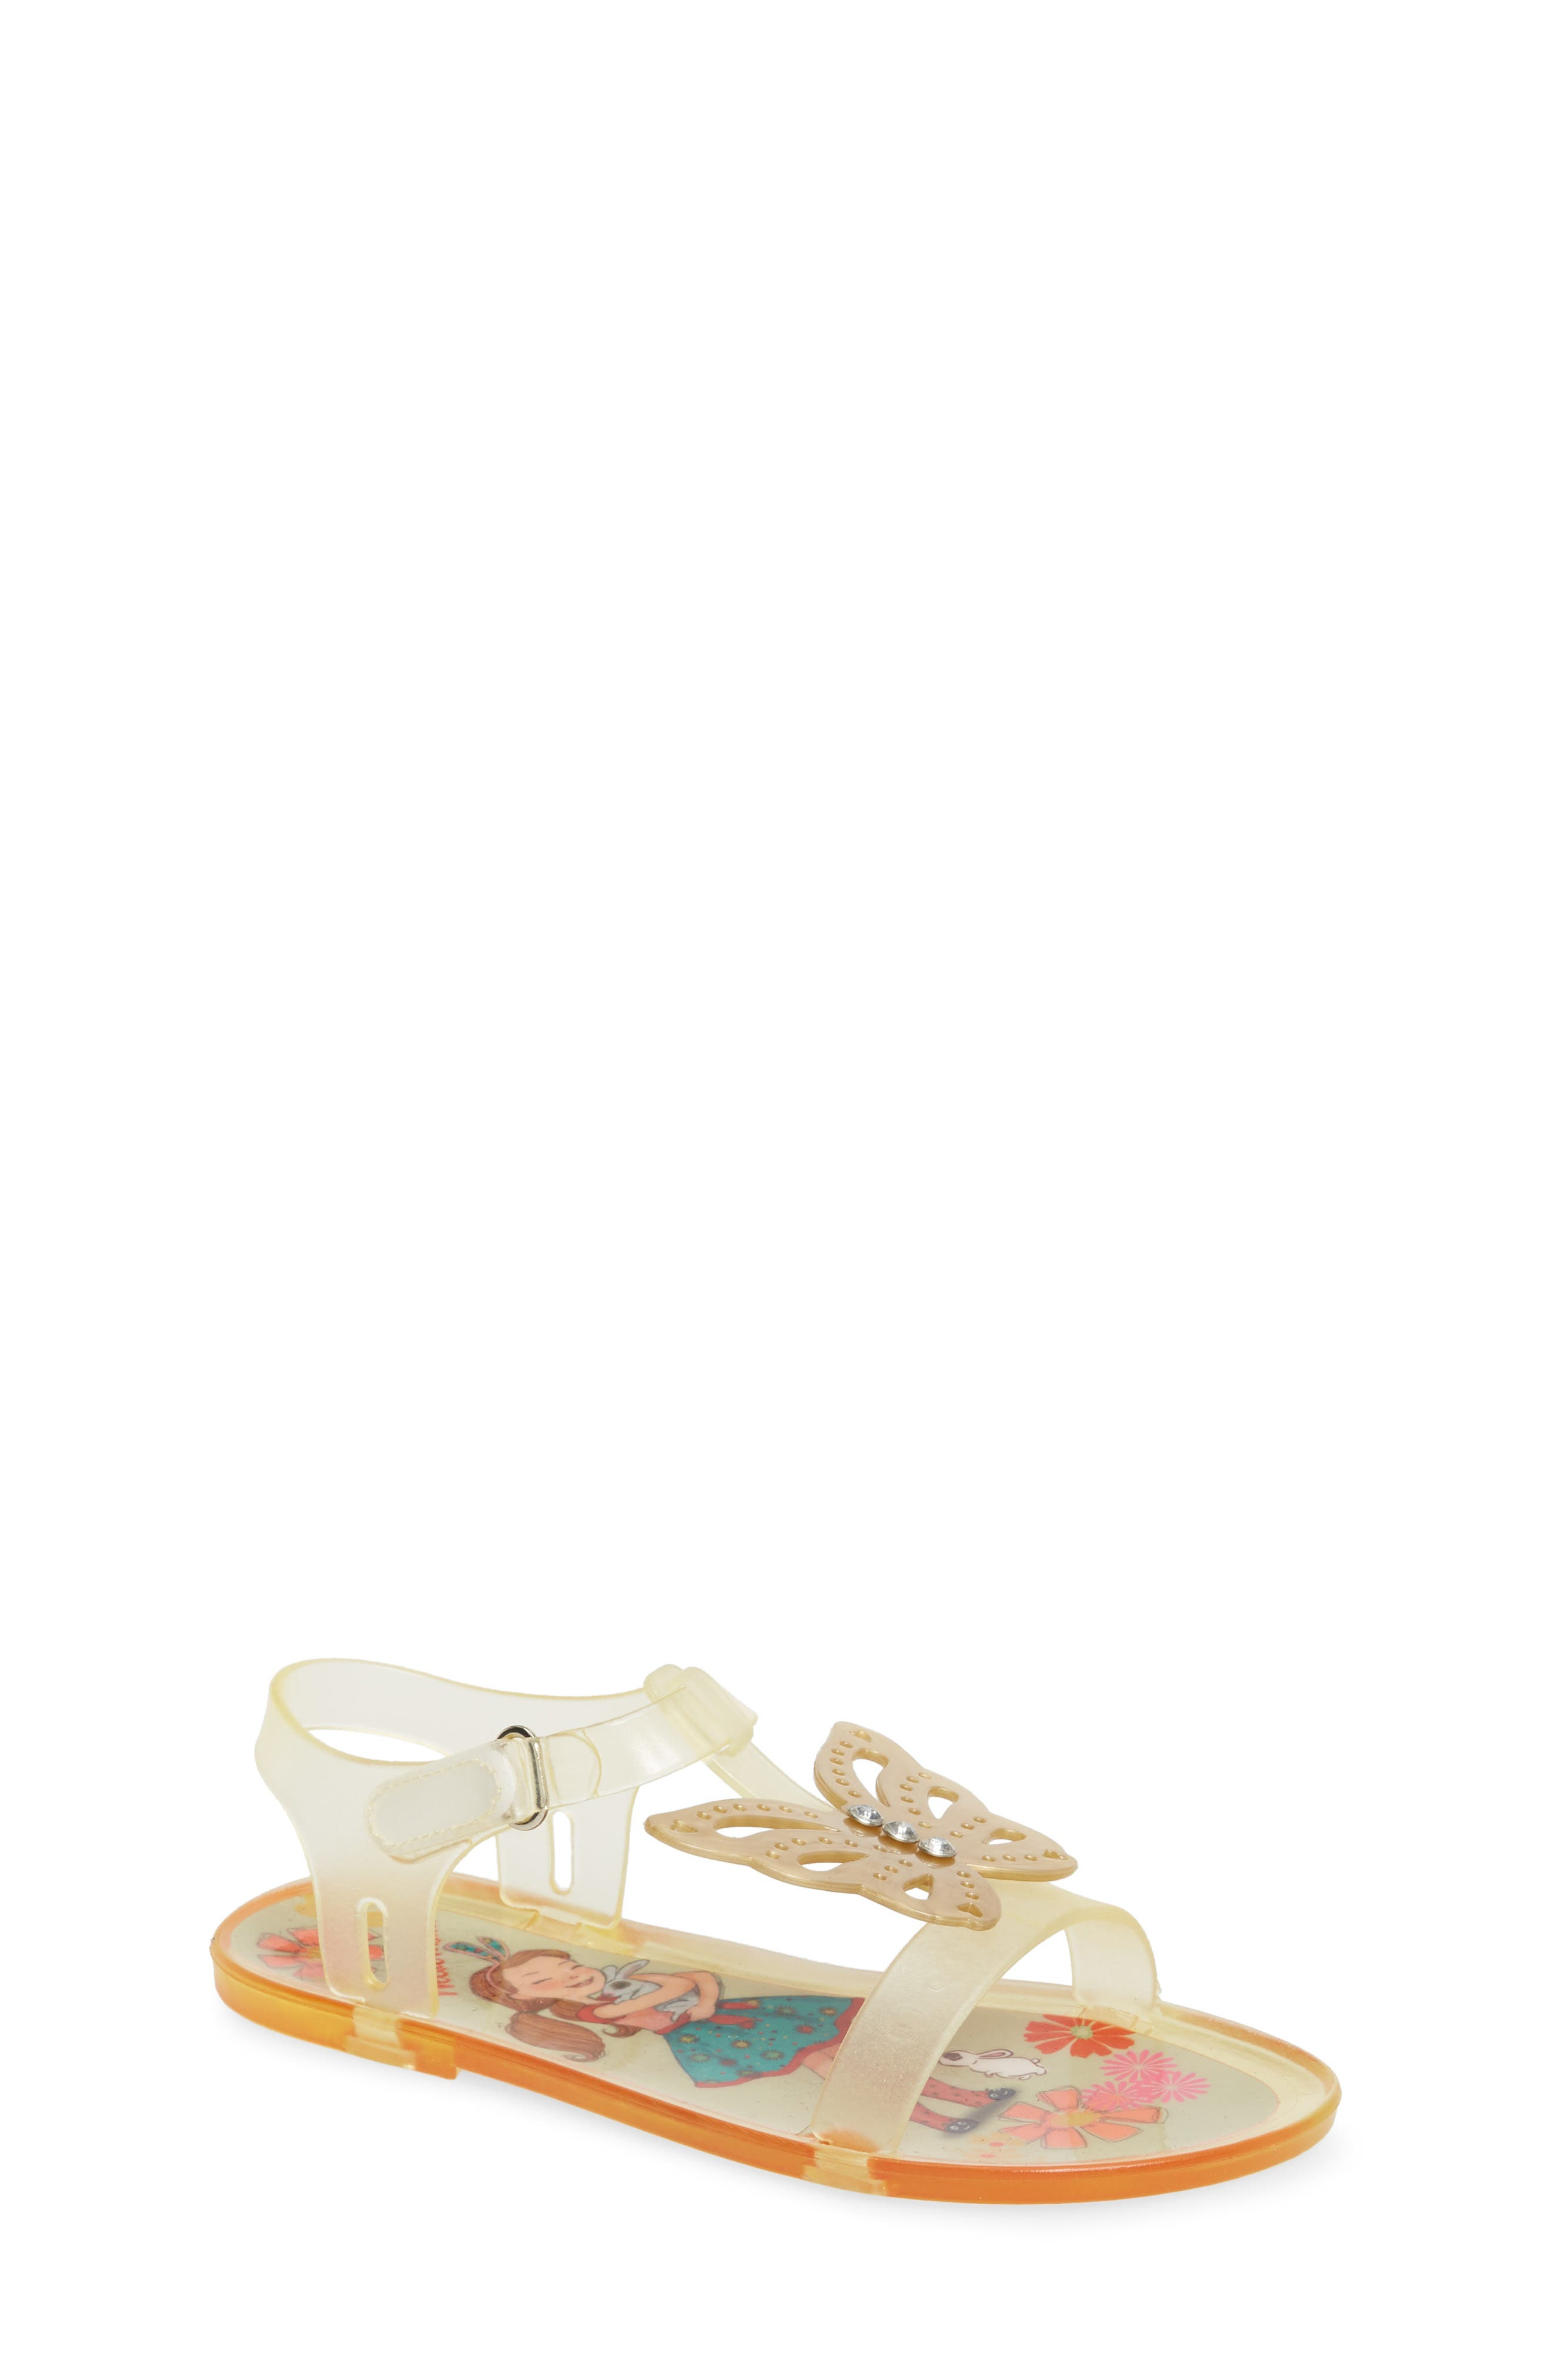 Willa Butterfly Jelly Sandal,                         Main,                         color, 710